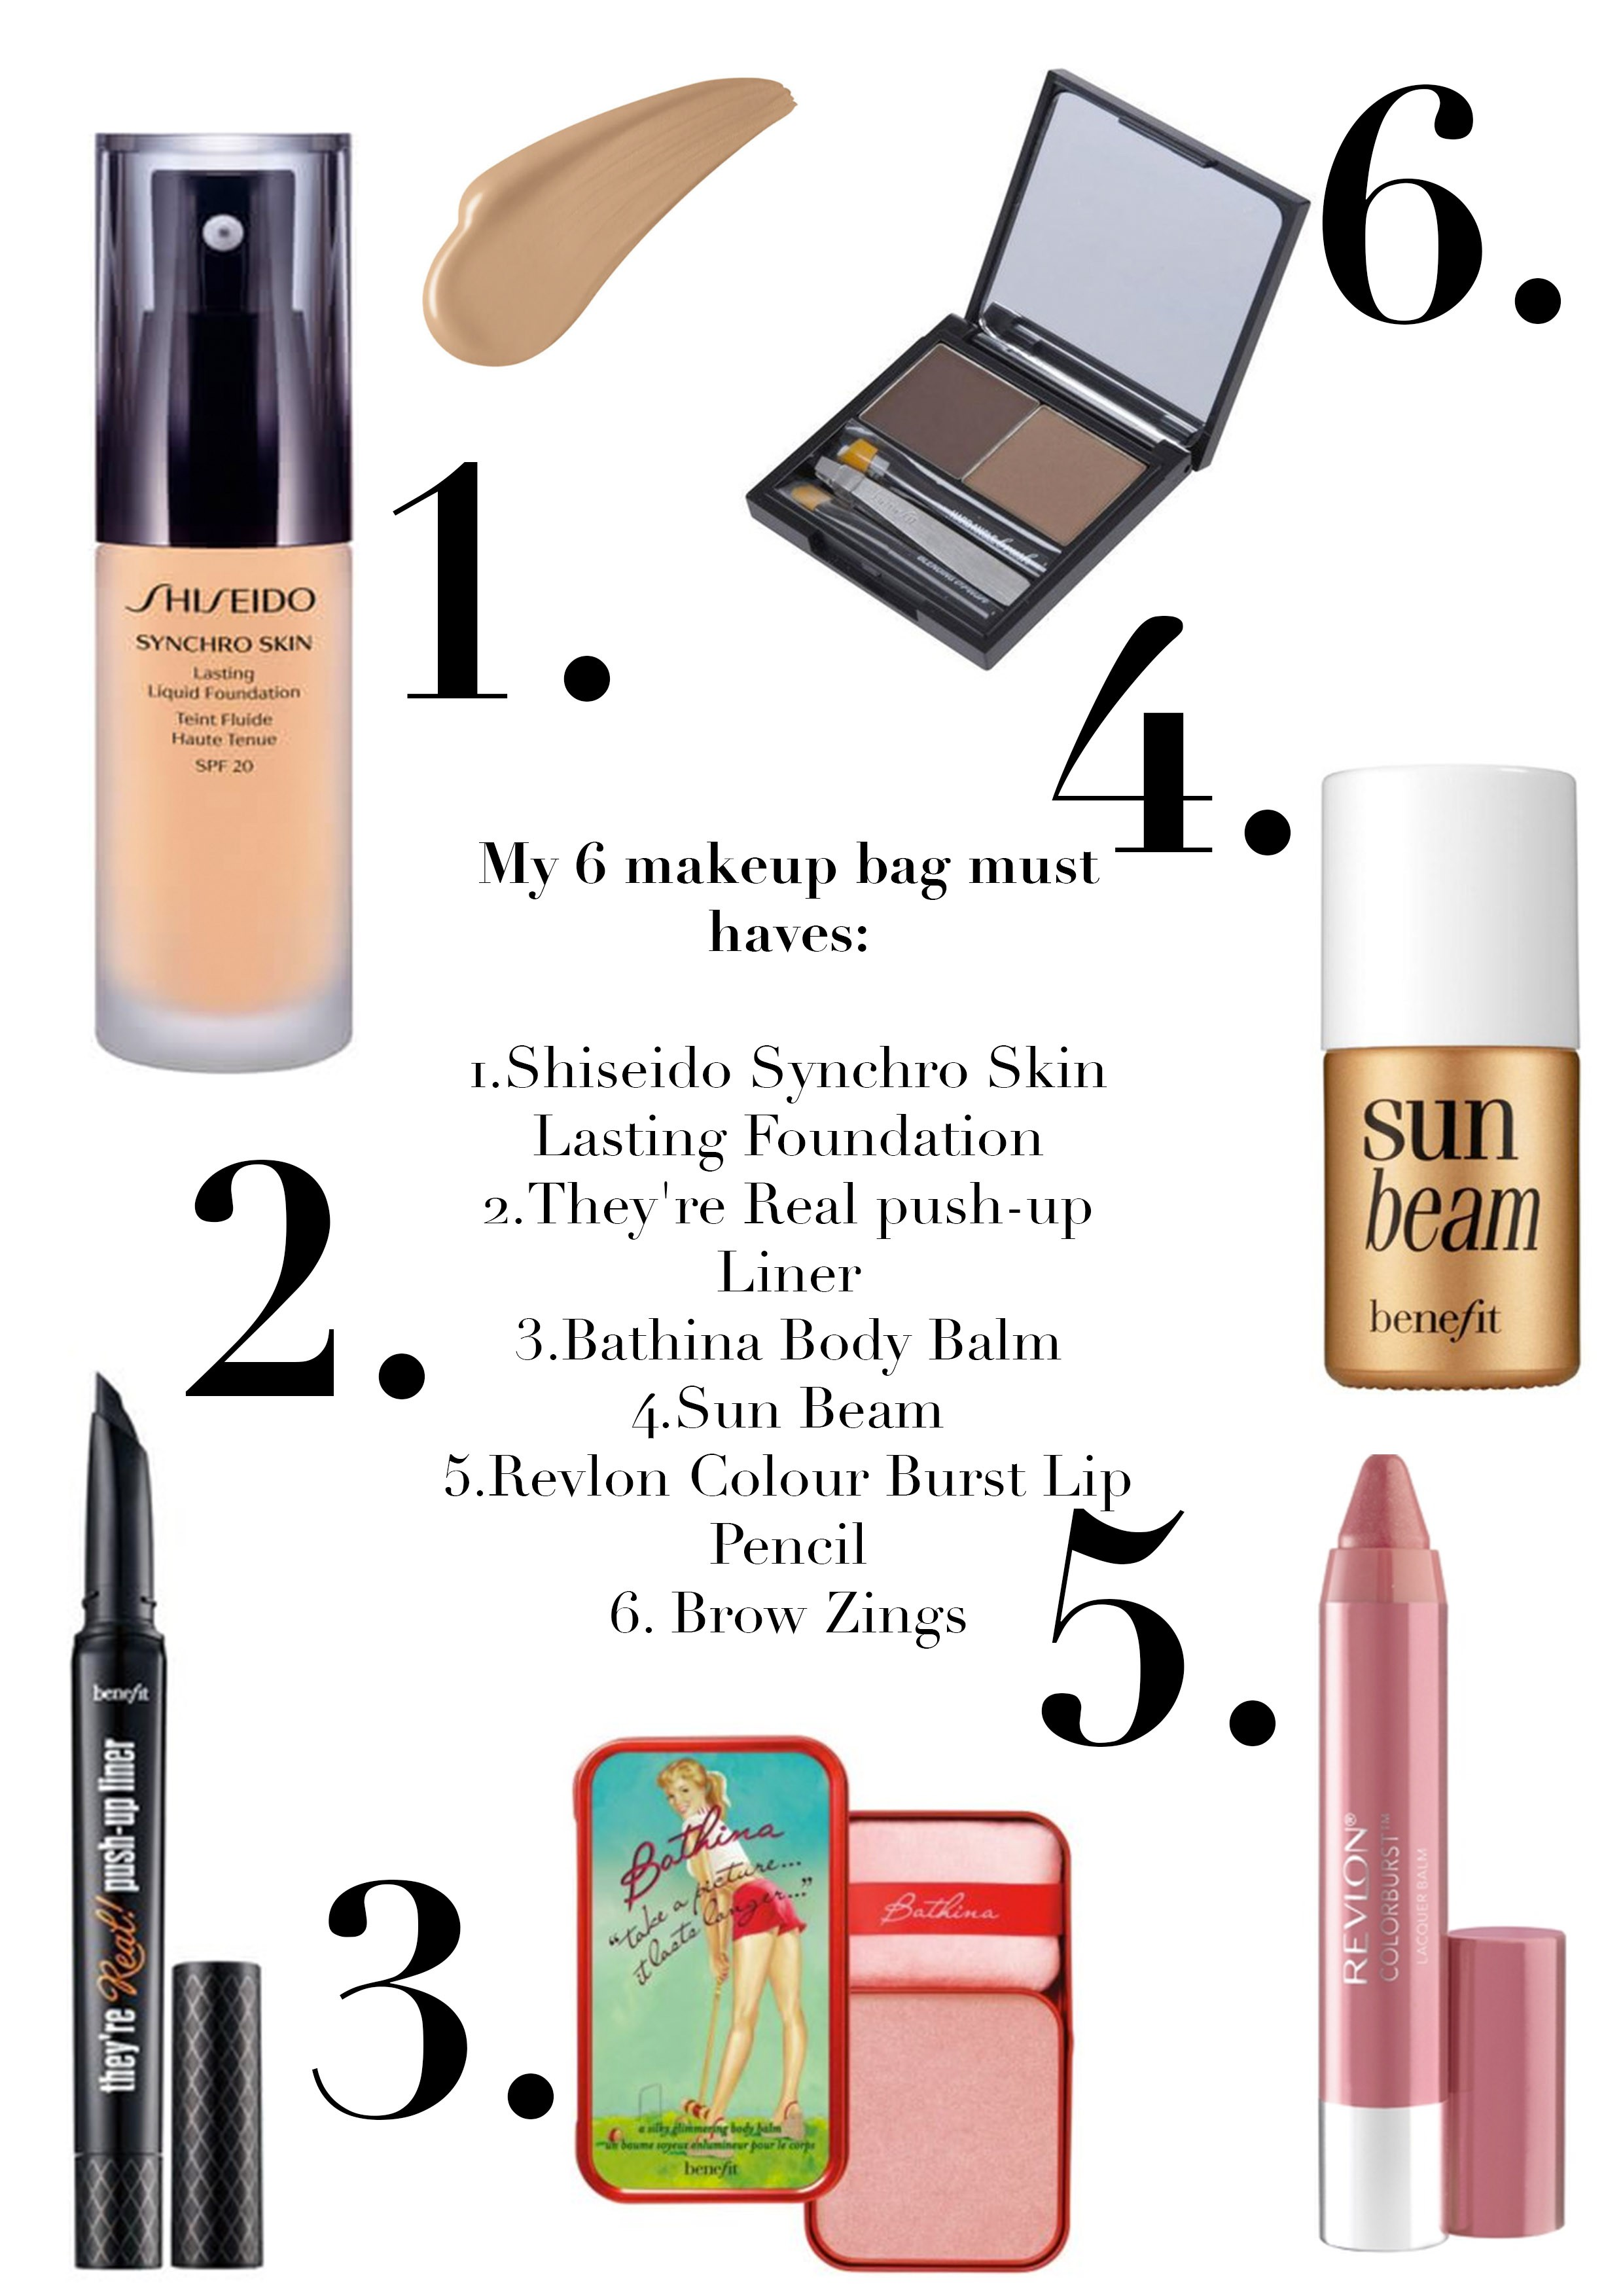 caggies 6 makeup bag must haves - Makeup Must Haves